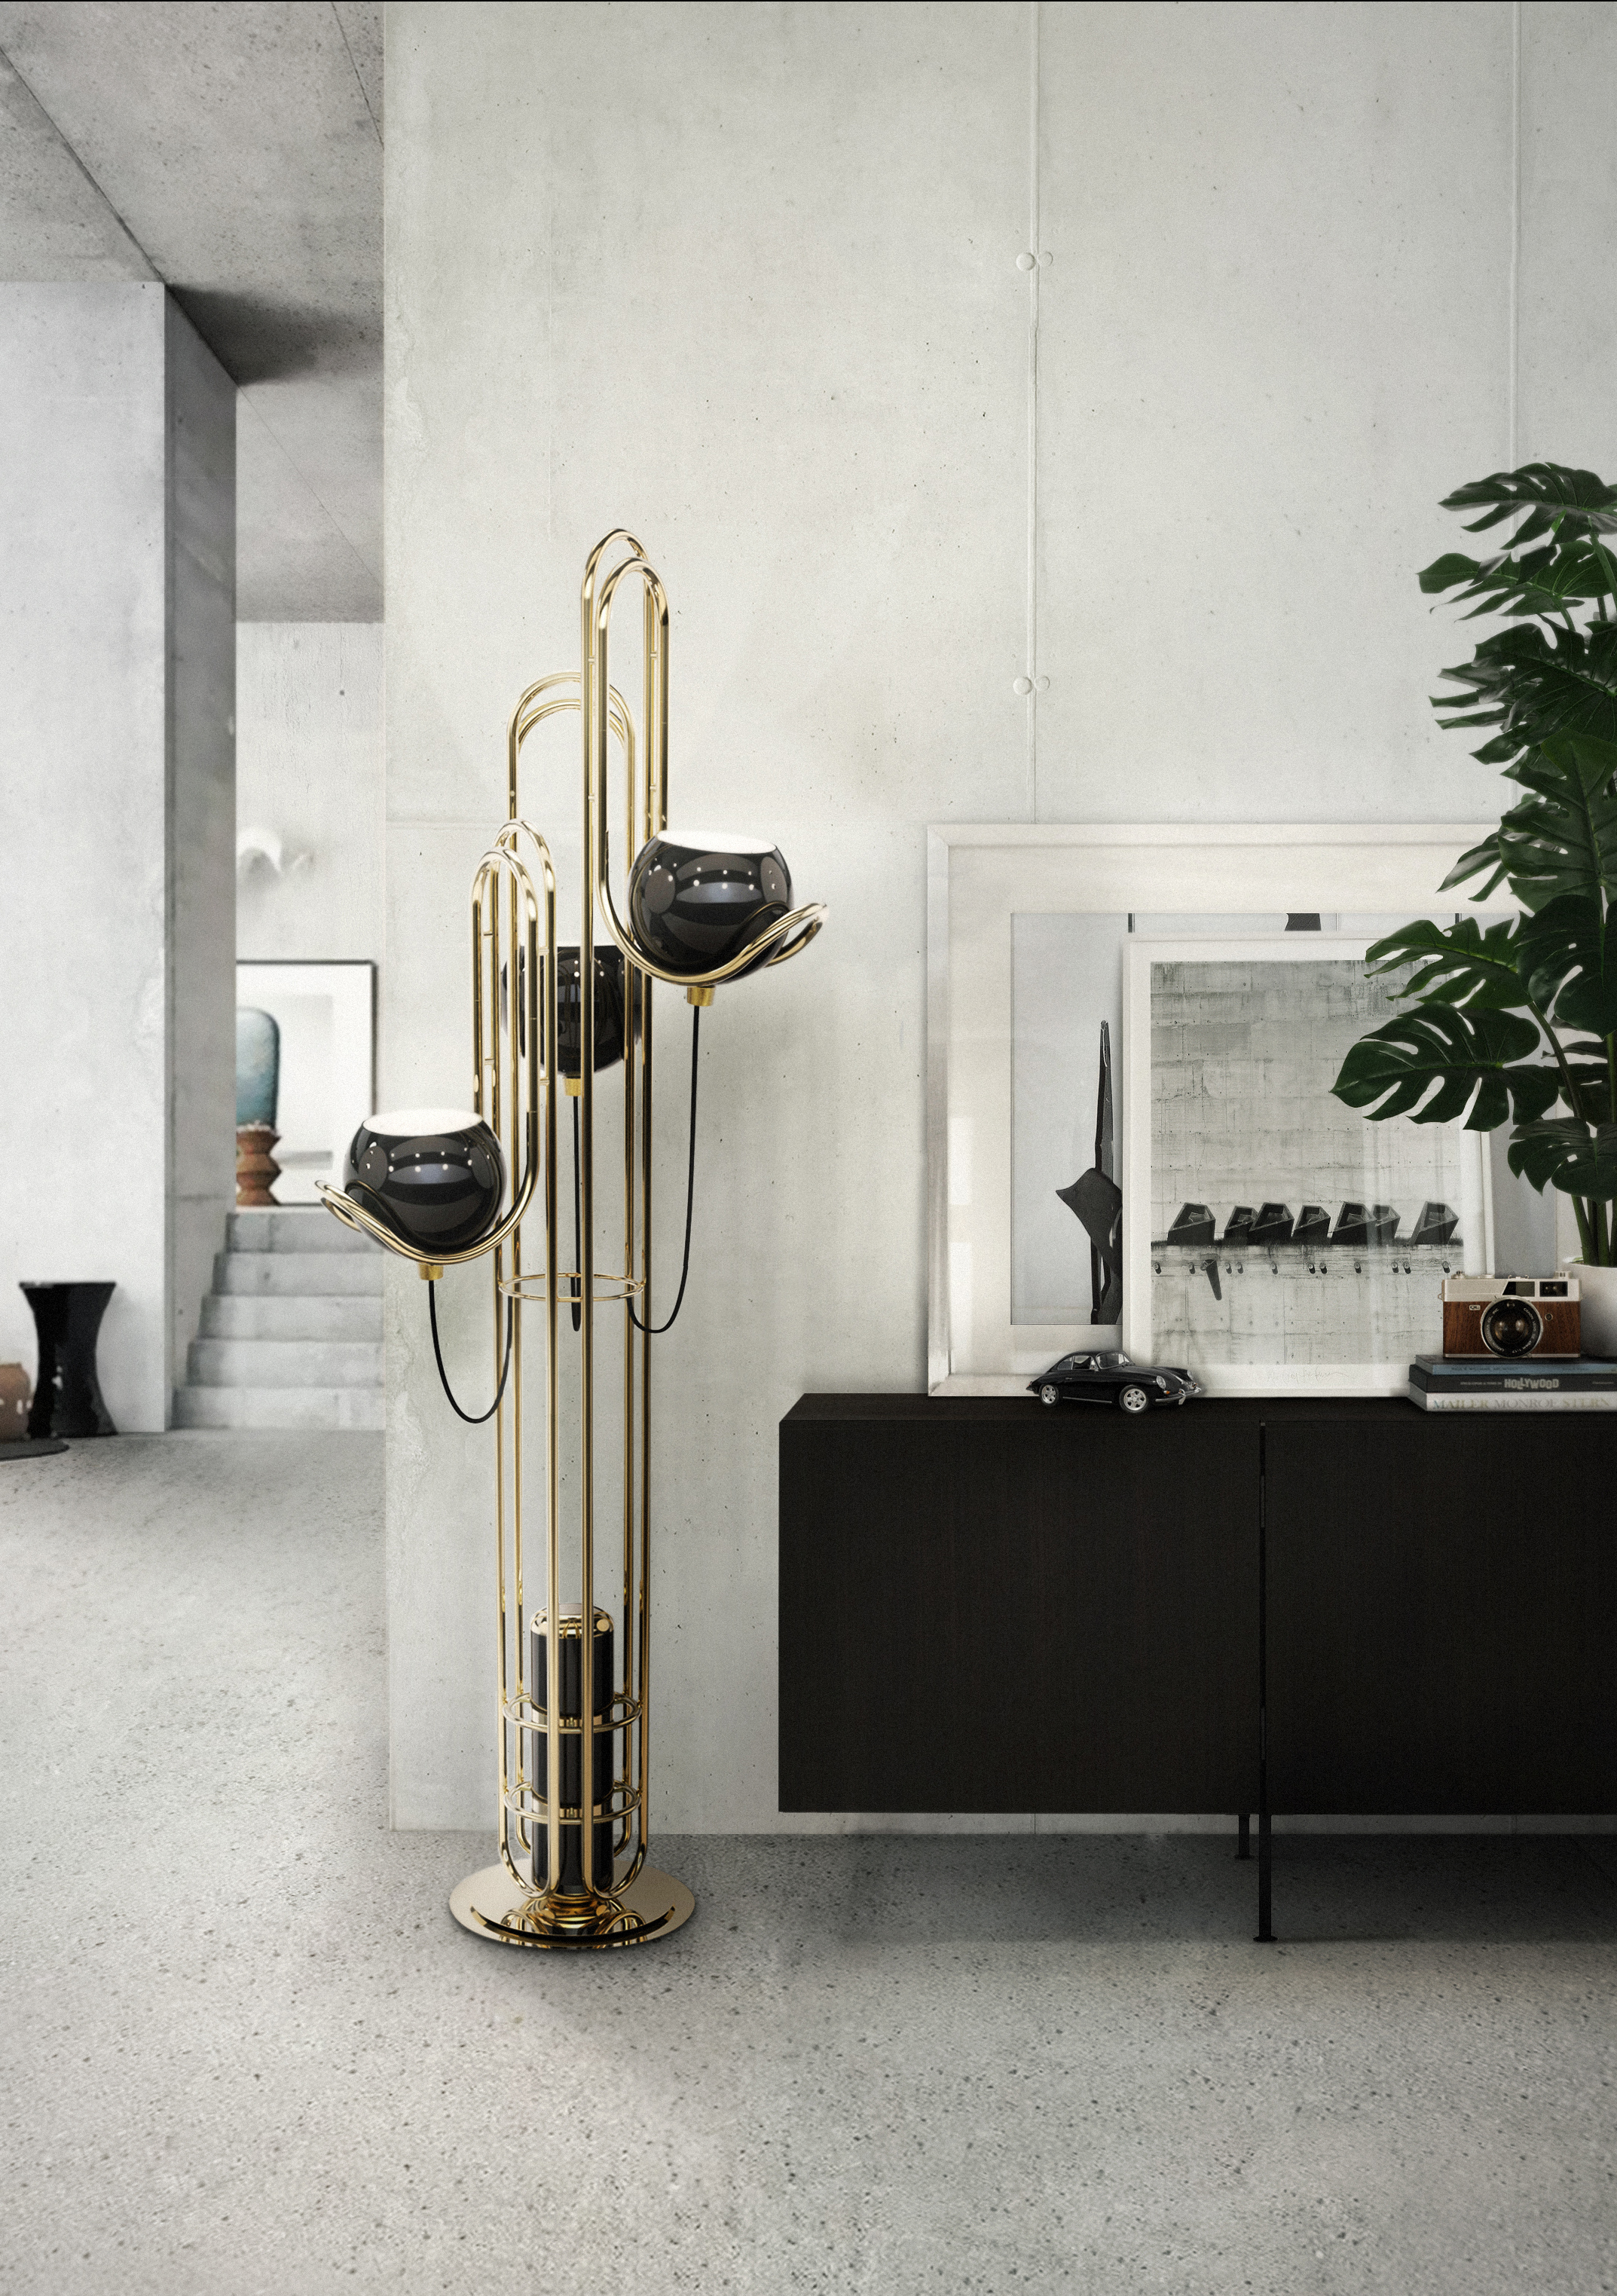 Bright Ideas Modern Floor Lamp Inspired in The Golden Years of Space 2 modern floor lamp Bright Ideas: Modern Floor Lamp Inspired in The Golden Years of Space Bright Ideas Modern Floor Lamp Inspired in The Golden Years of Space 2